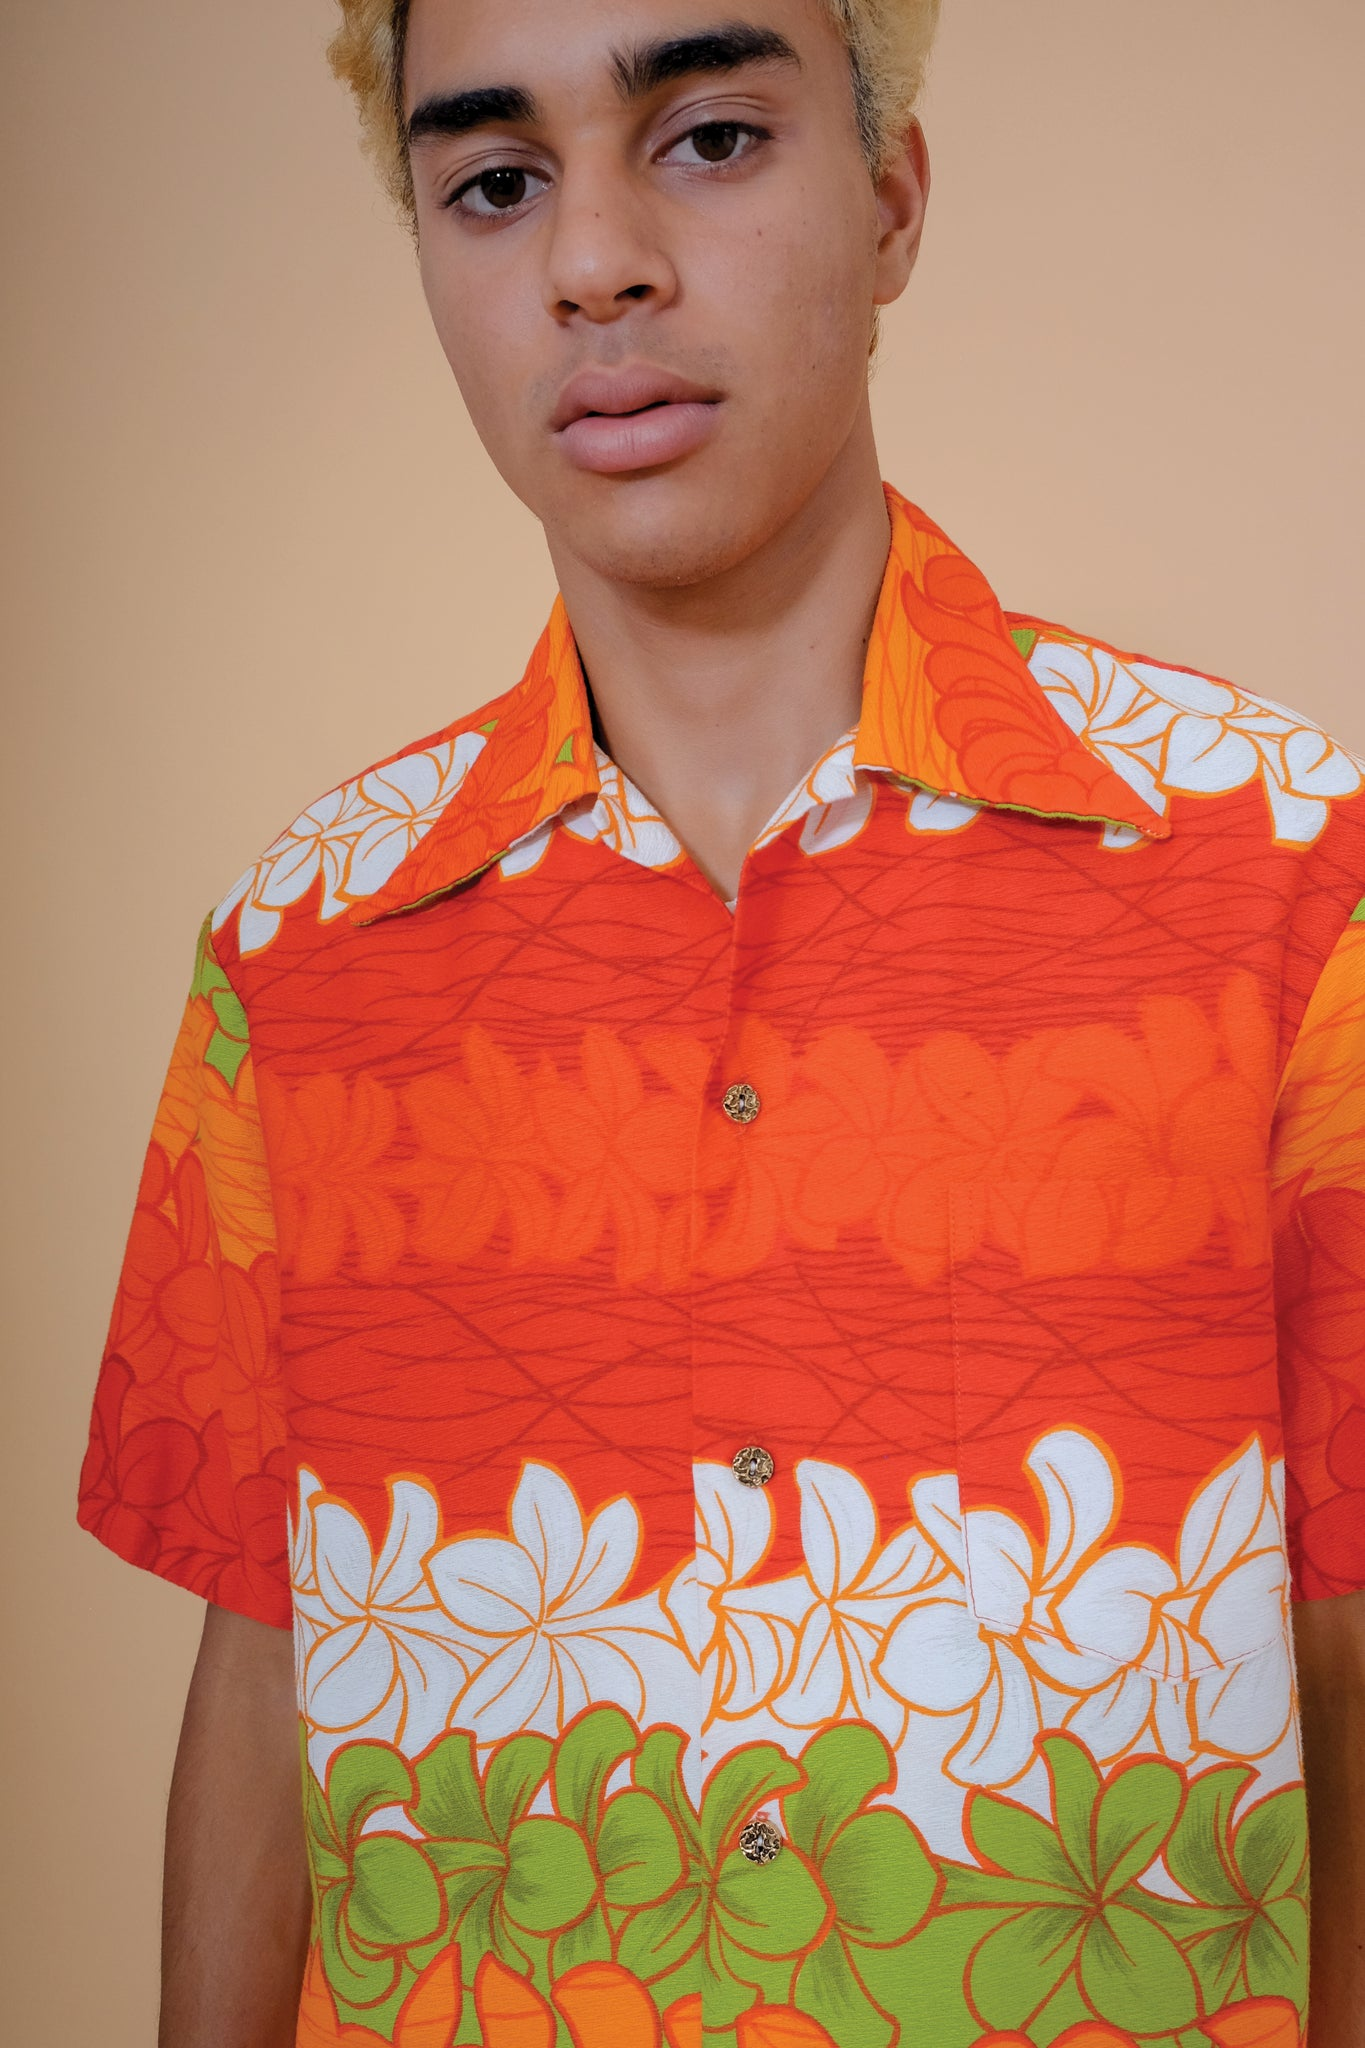 Vintage Aloha Shirt - Keliis of Hawaii - Orange